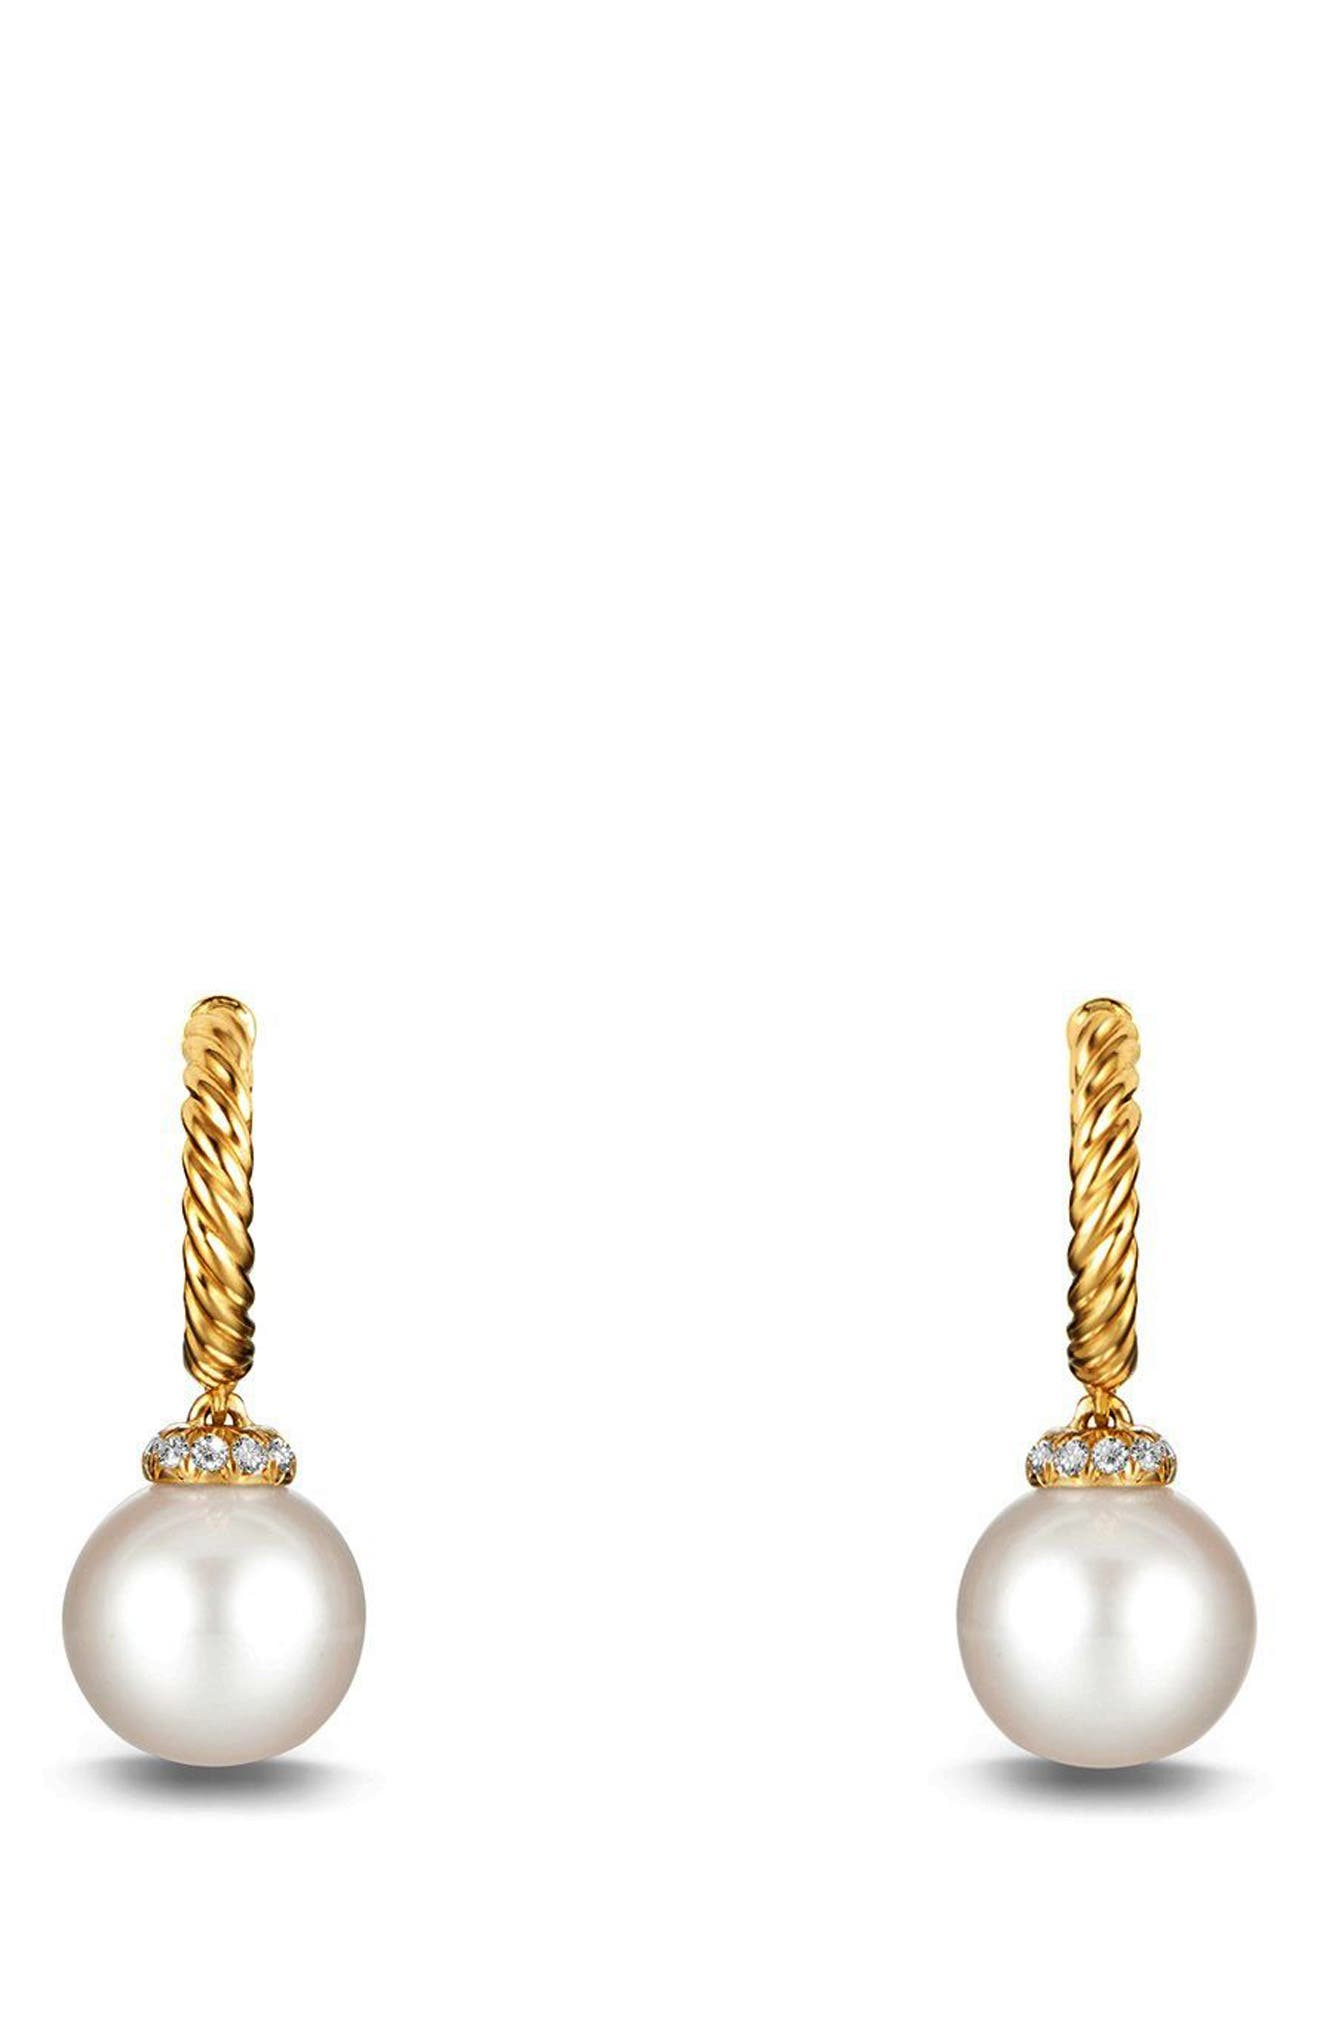 'Solari' Hoop Earring with Diamonds and Pearls in 18K Gold,                             Alternate thumbnail 2, color,                             PEARL